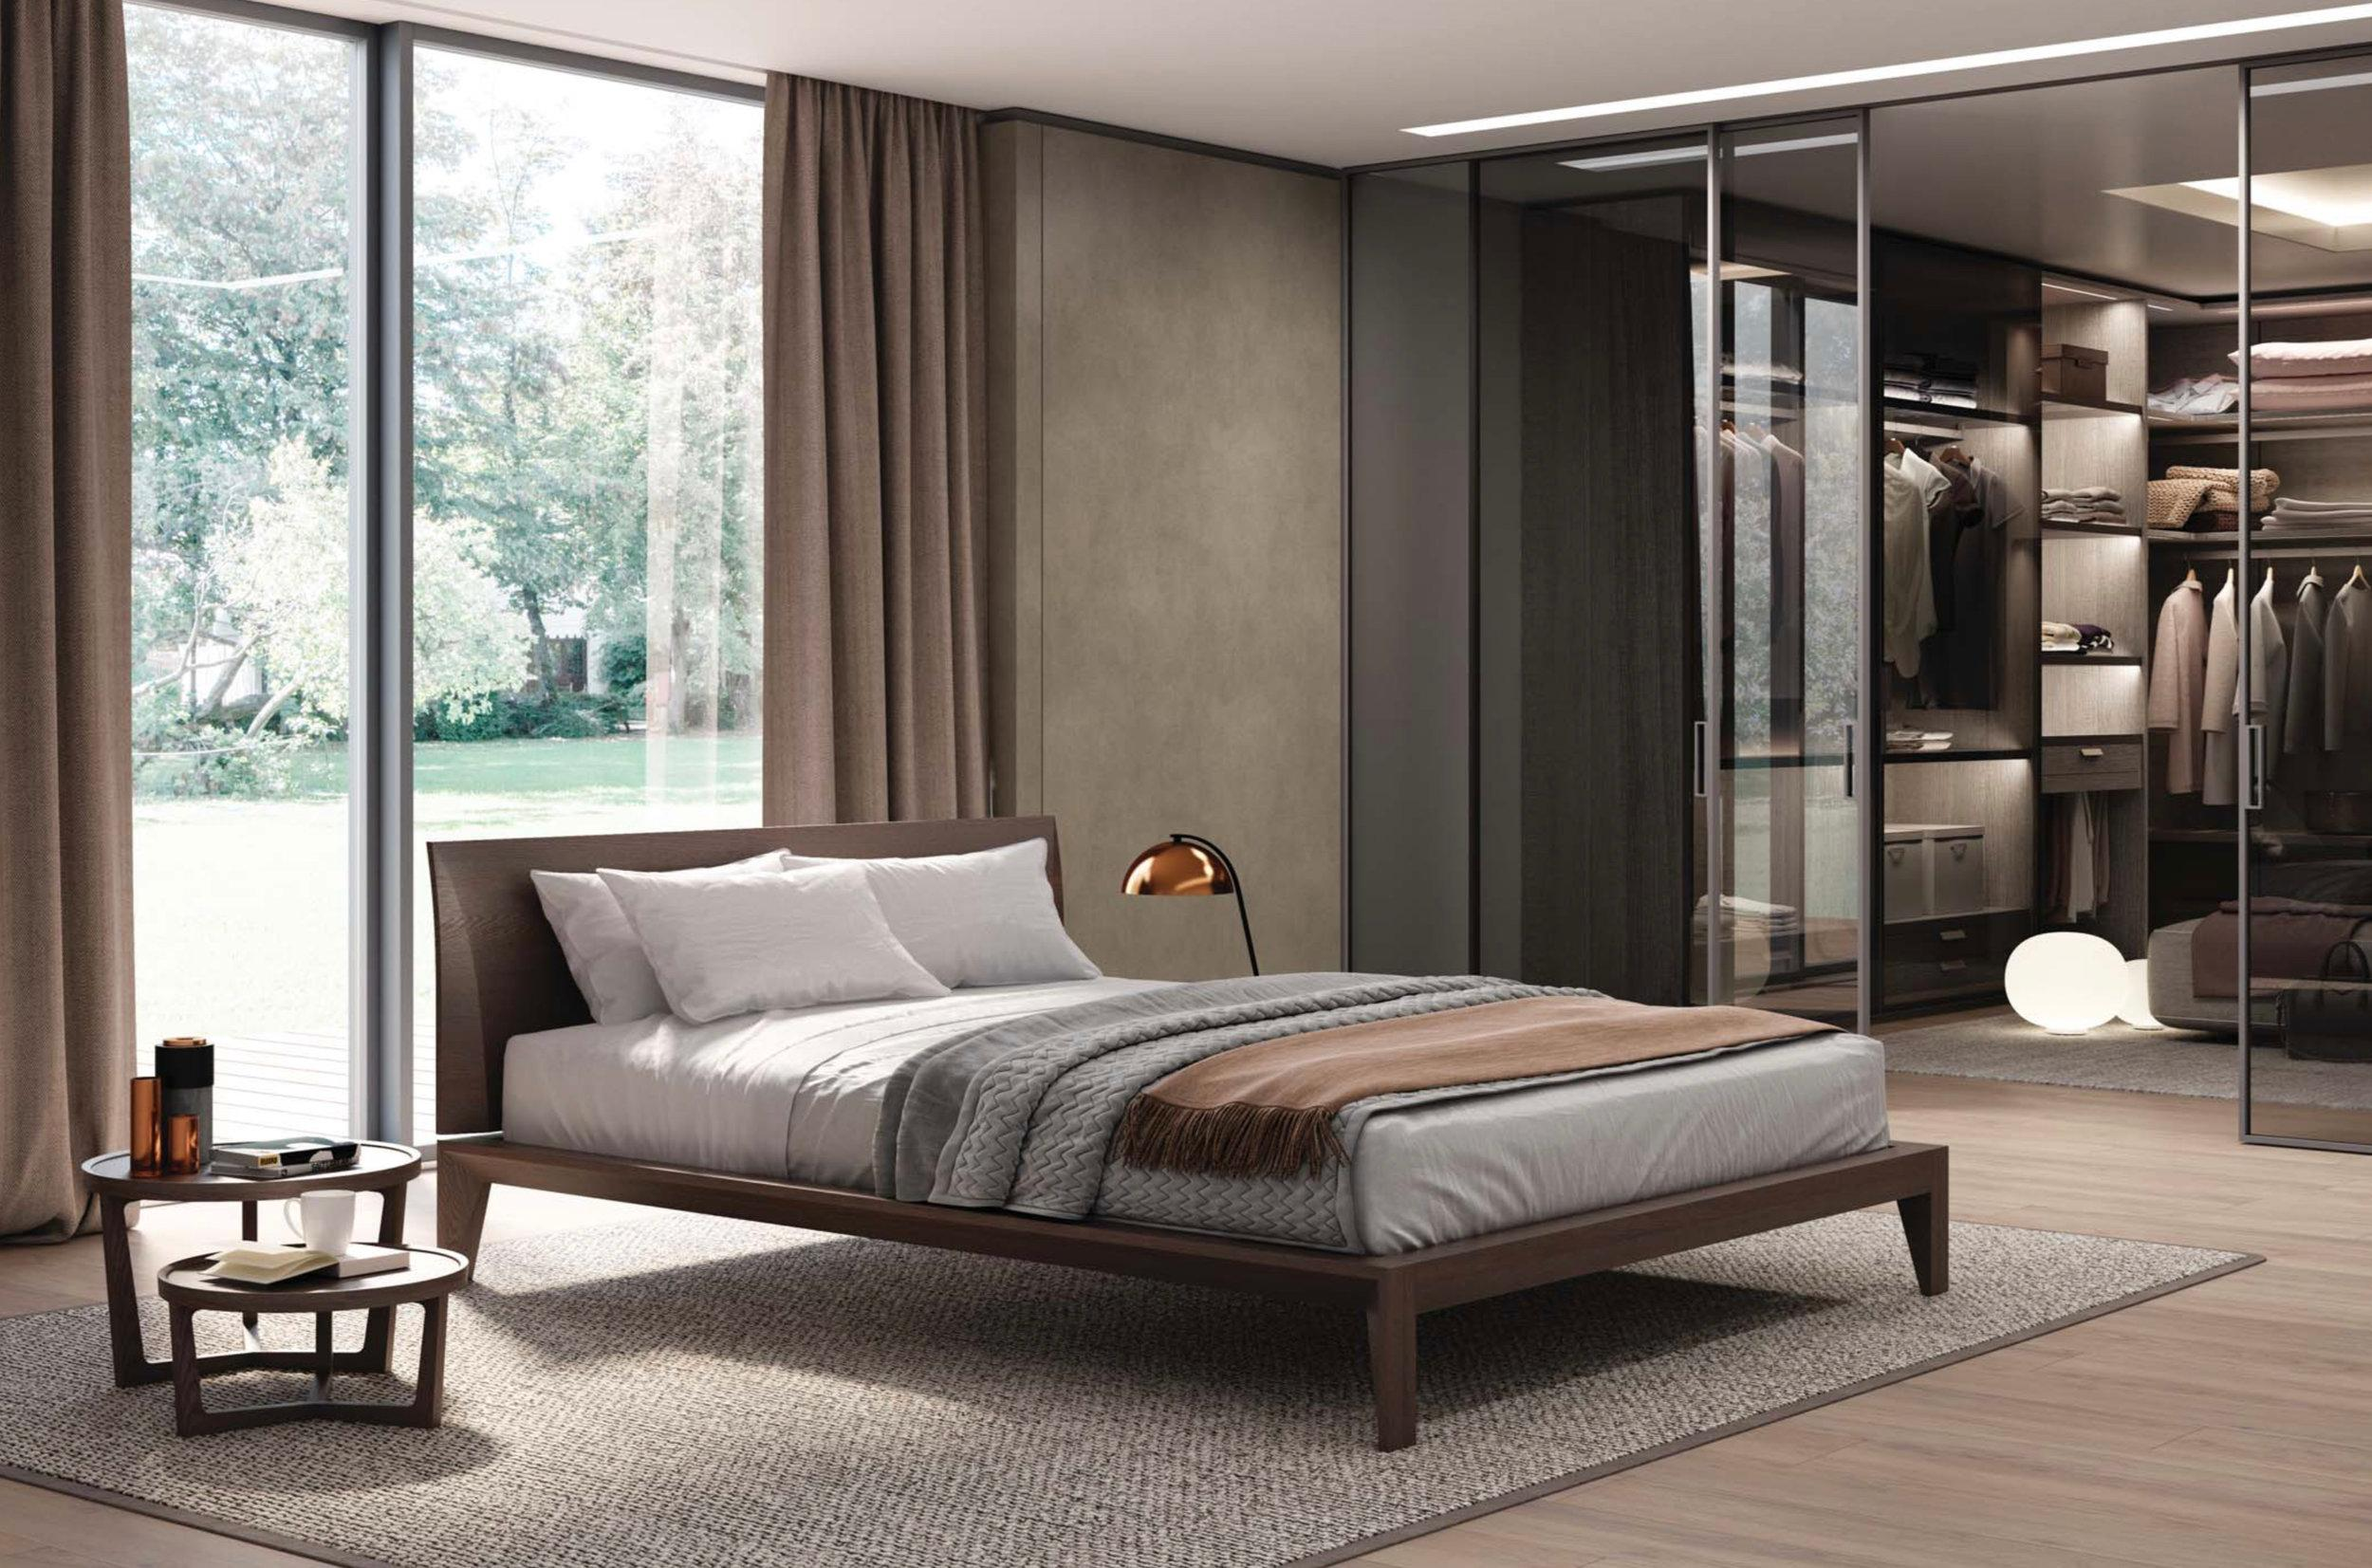 Italian Modern Wood Bed Handmade and Designed in Italy, Wood or Leather  Queen